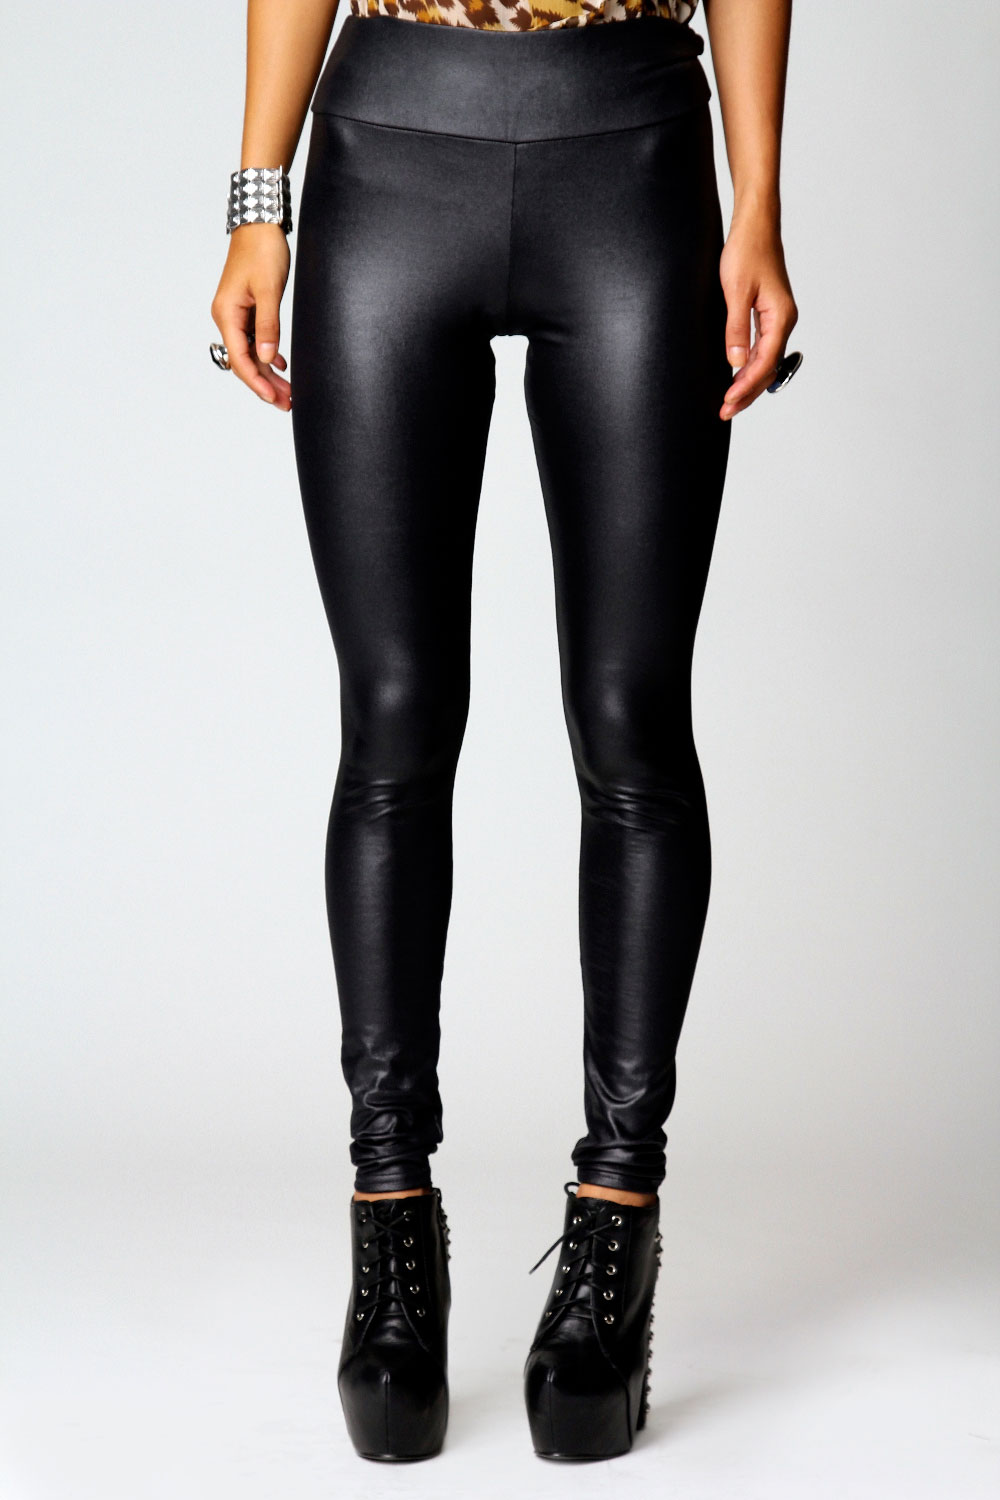 Look to leggings to prep your pins for the party or luxe up your loungewear. Whether you're poppin' in prints, getting dance floor ready in disco leggings or going back to basics in black, legging lovers can't get enough of the cool-meets-comfy combo.